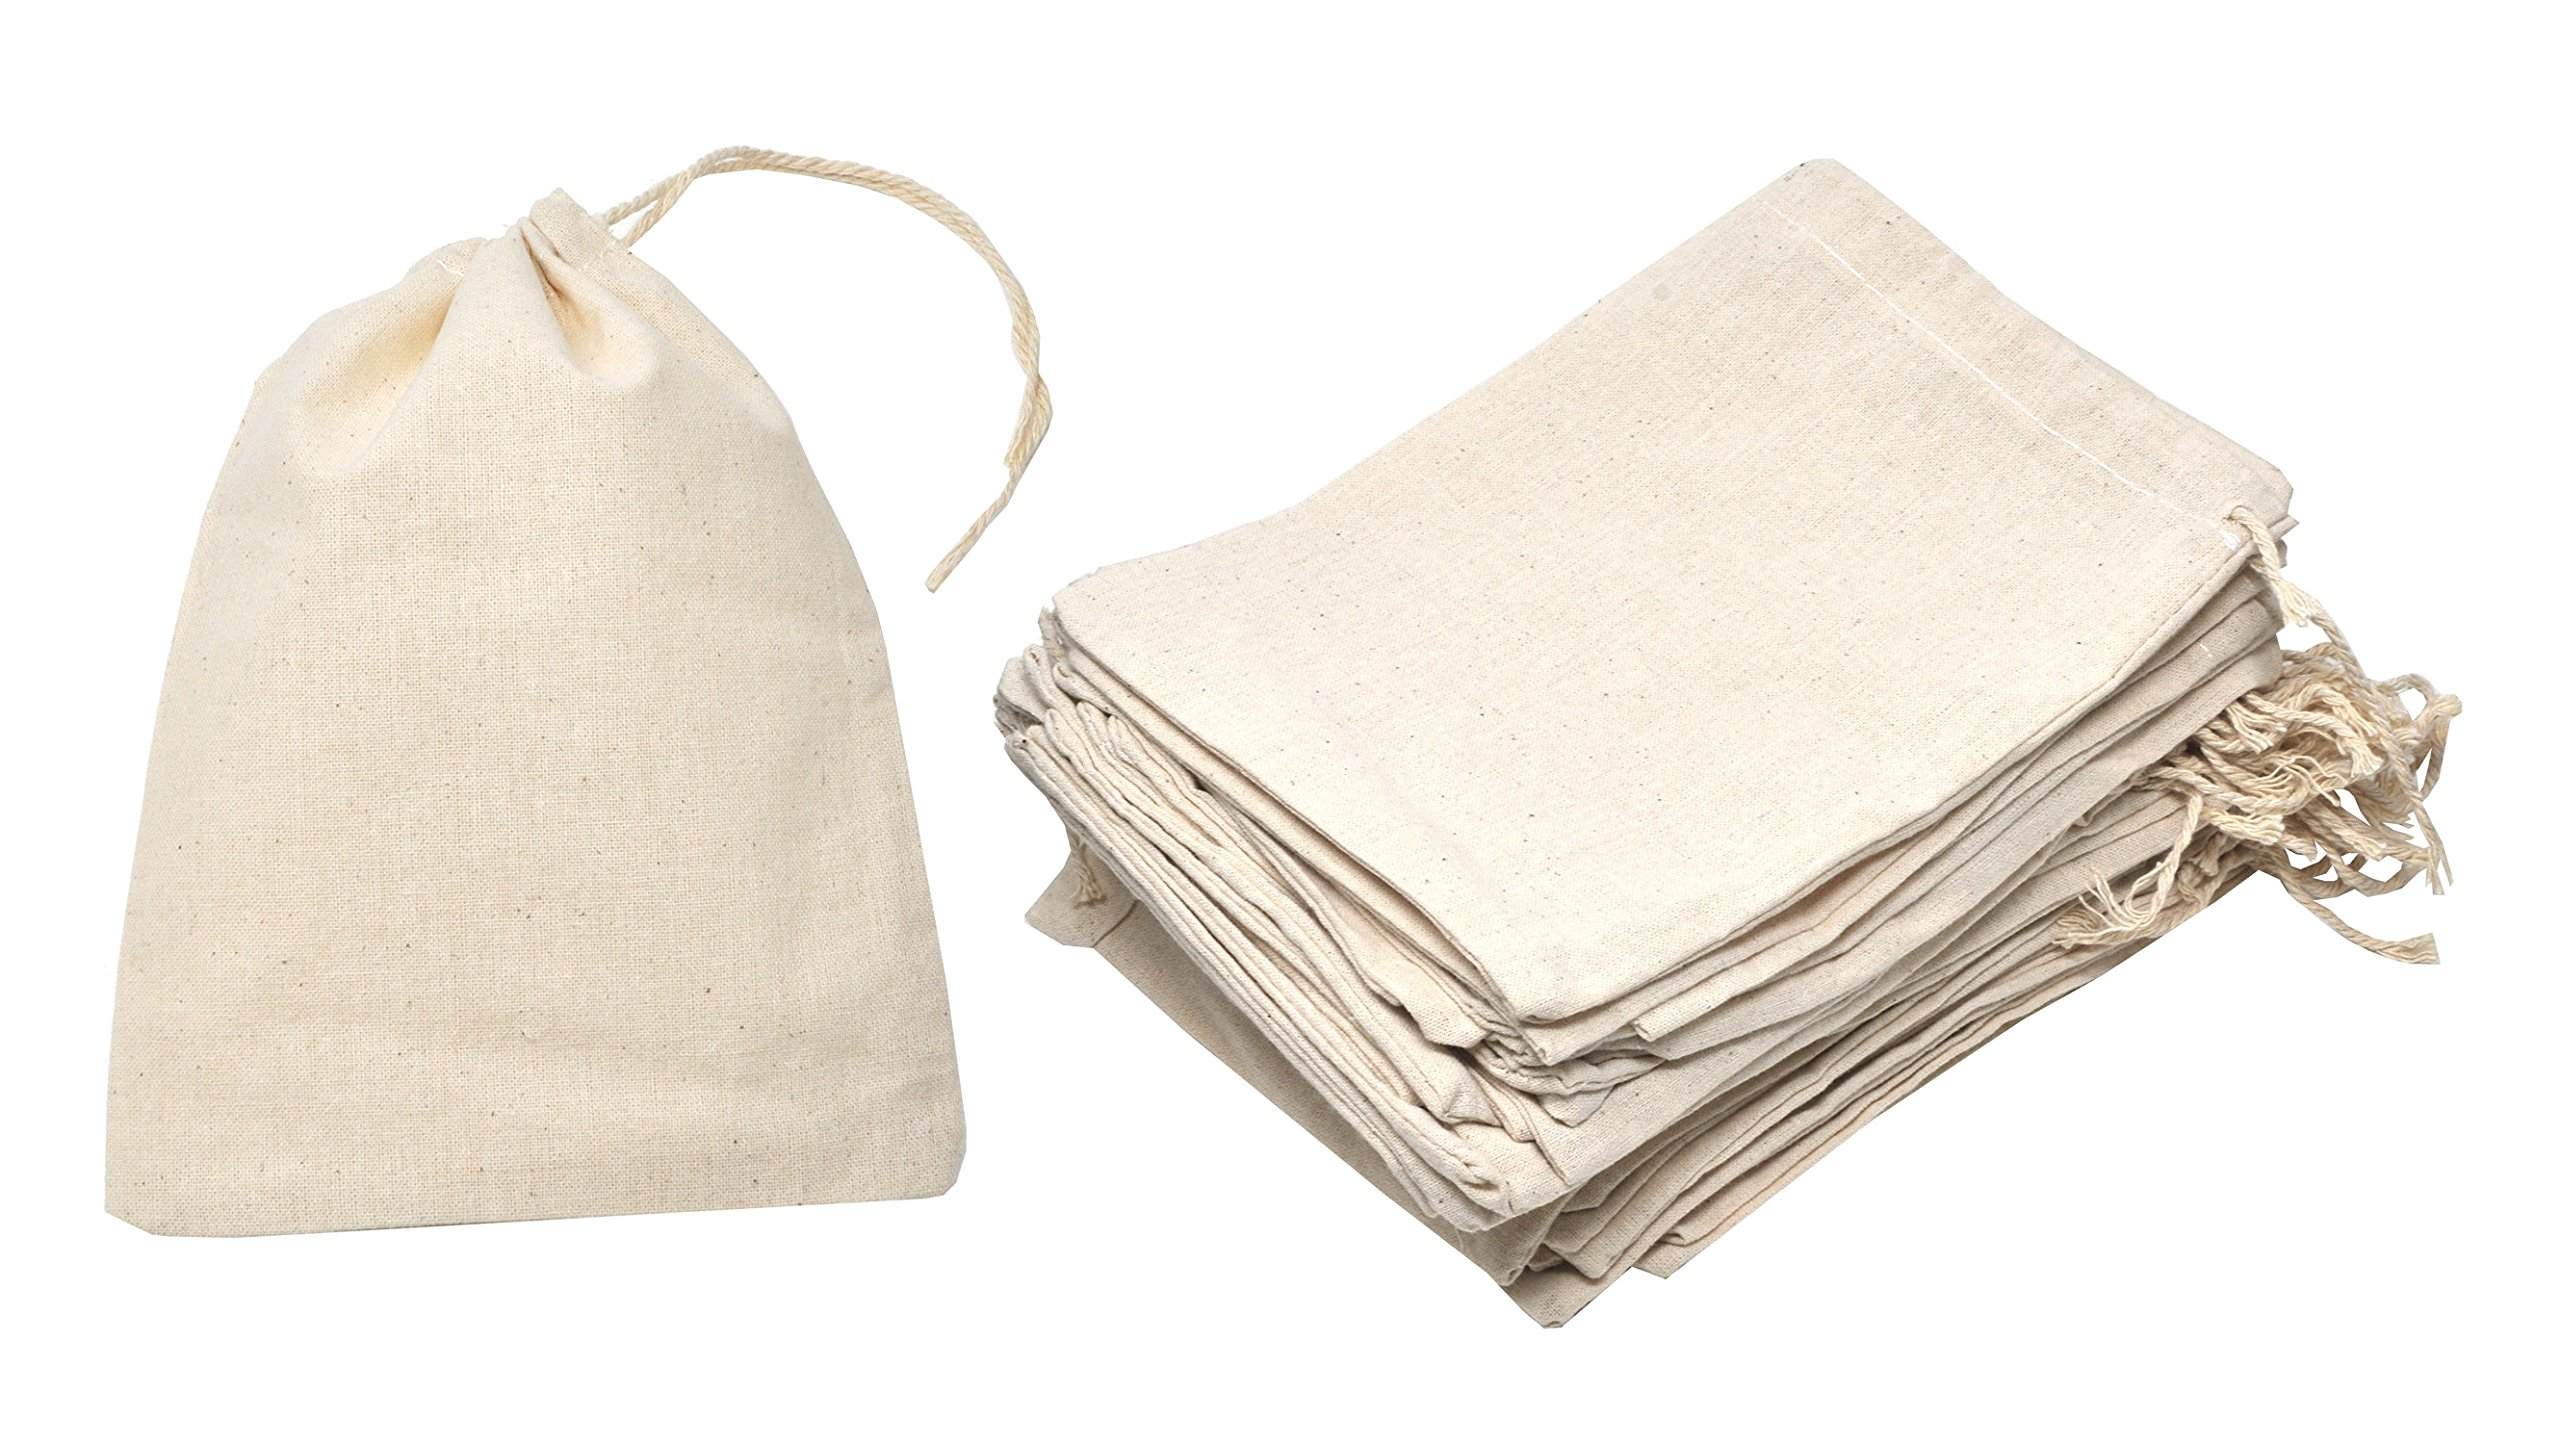 Mandala Crafts Bulk Unbleached Fabric Cloth Cotton Muslin Sachet Bags with Drawstring for Soap Spice Tea Favor Gift (5.75 X 7.5 Inches 20 Count, Ivory)